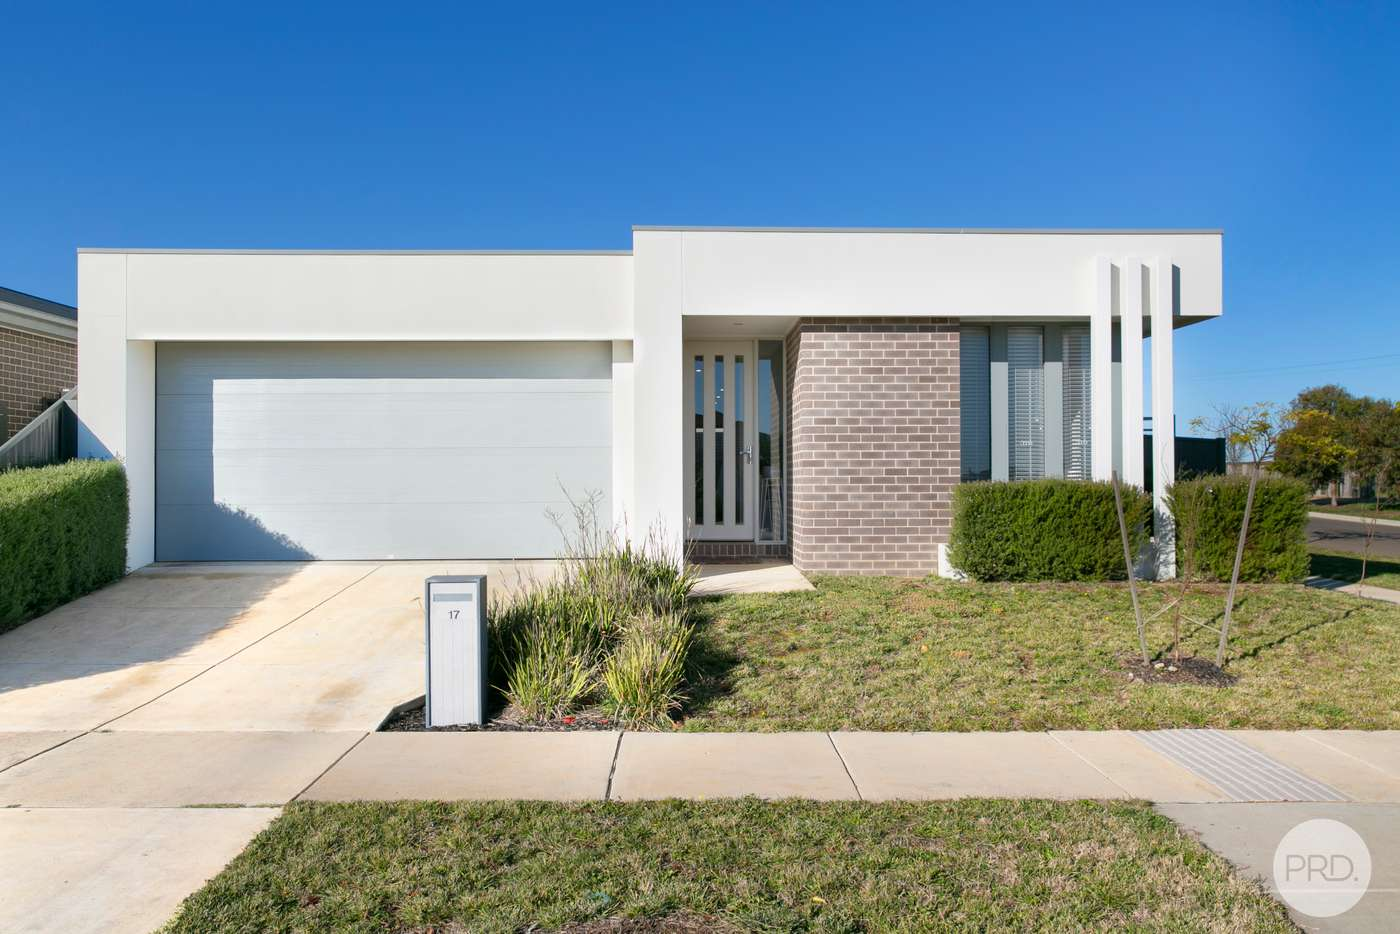 Main view of Homely house listing, 17 Gitsham Street, Alfredton VIC 3350